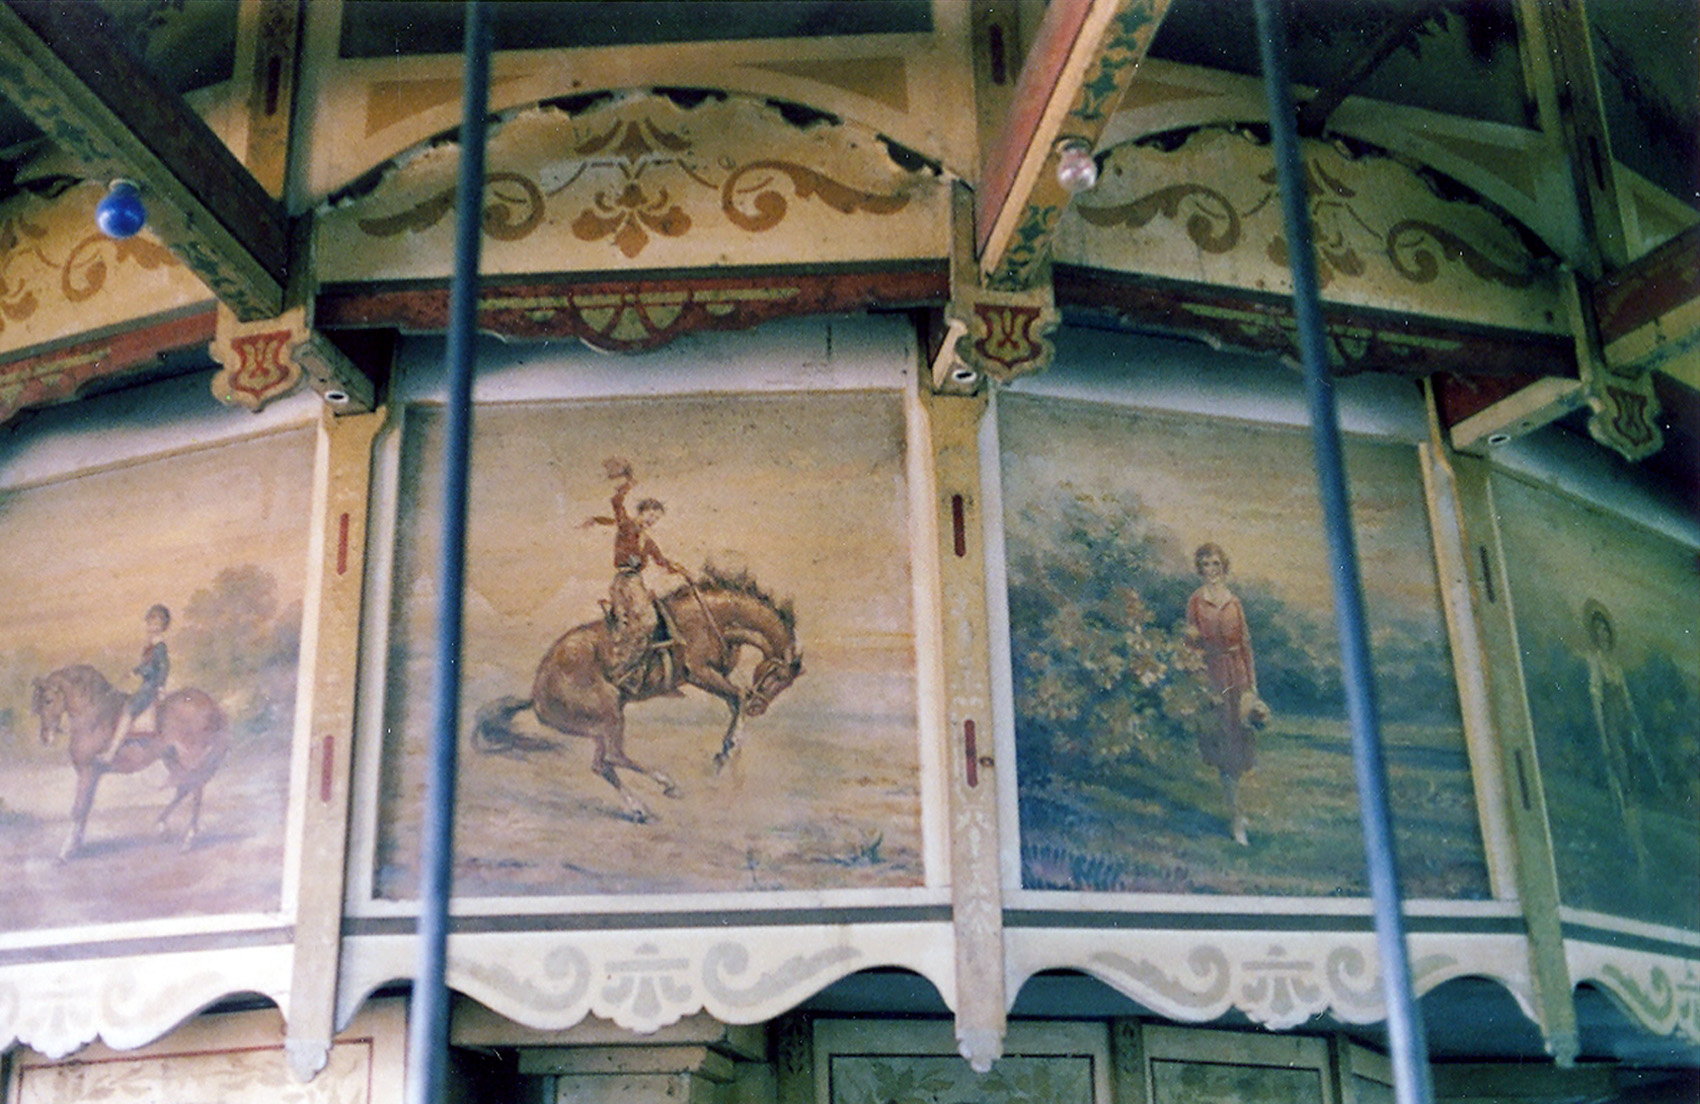 1905-PTC-9-carousel-inner-housing-art-photo-1980-Barbara-Williams-6